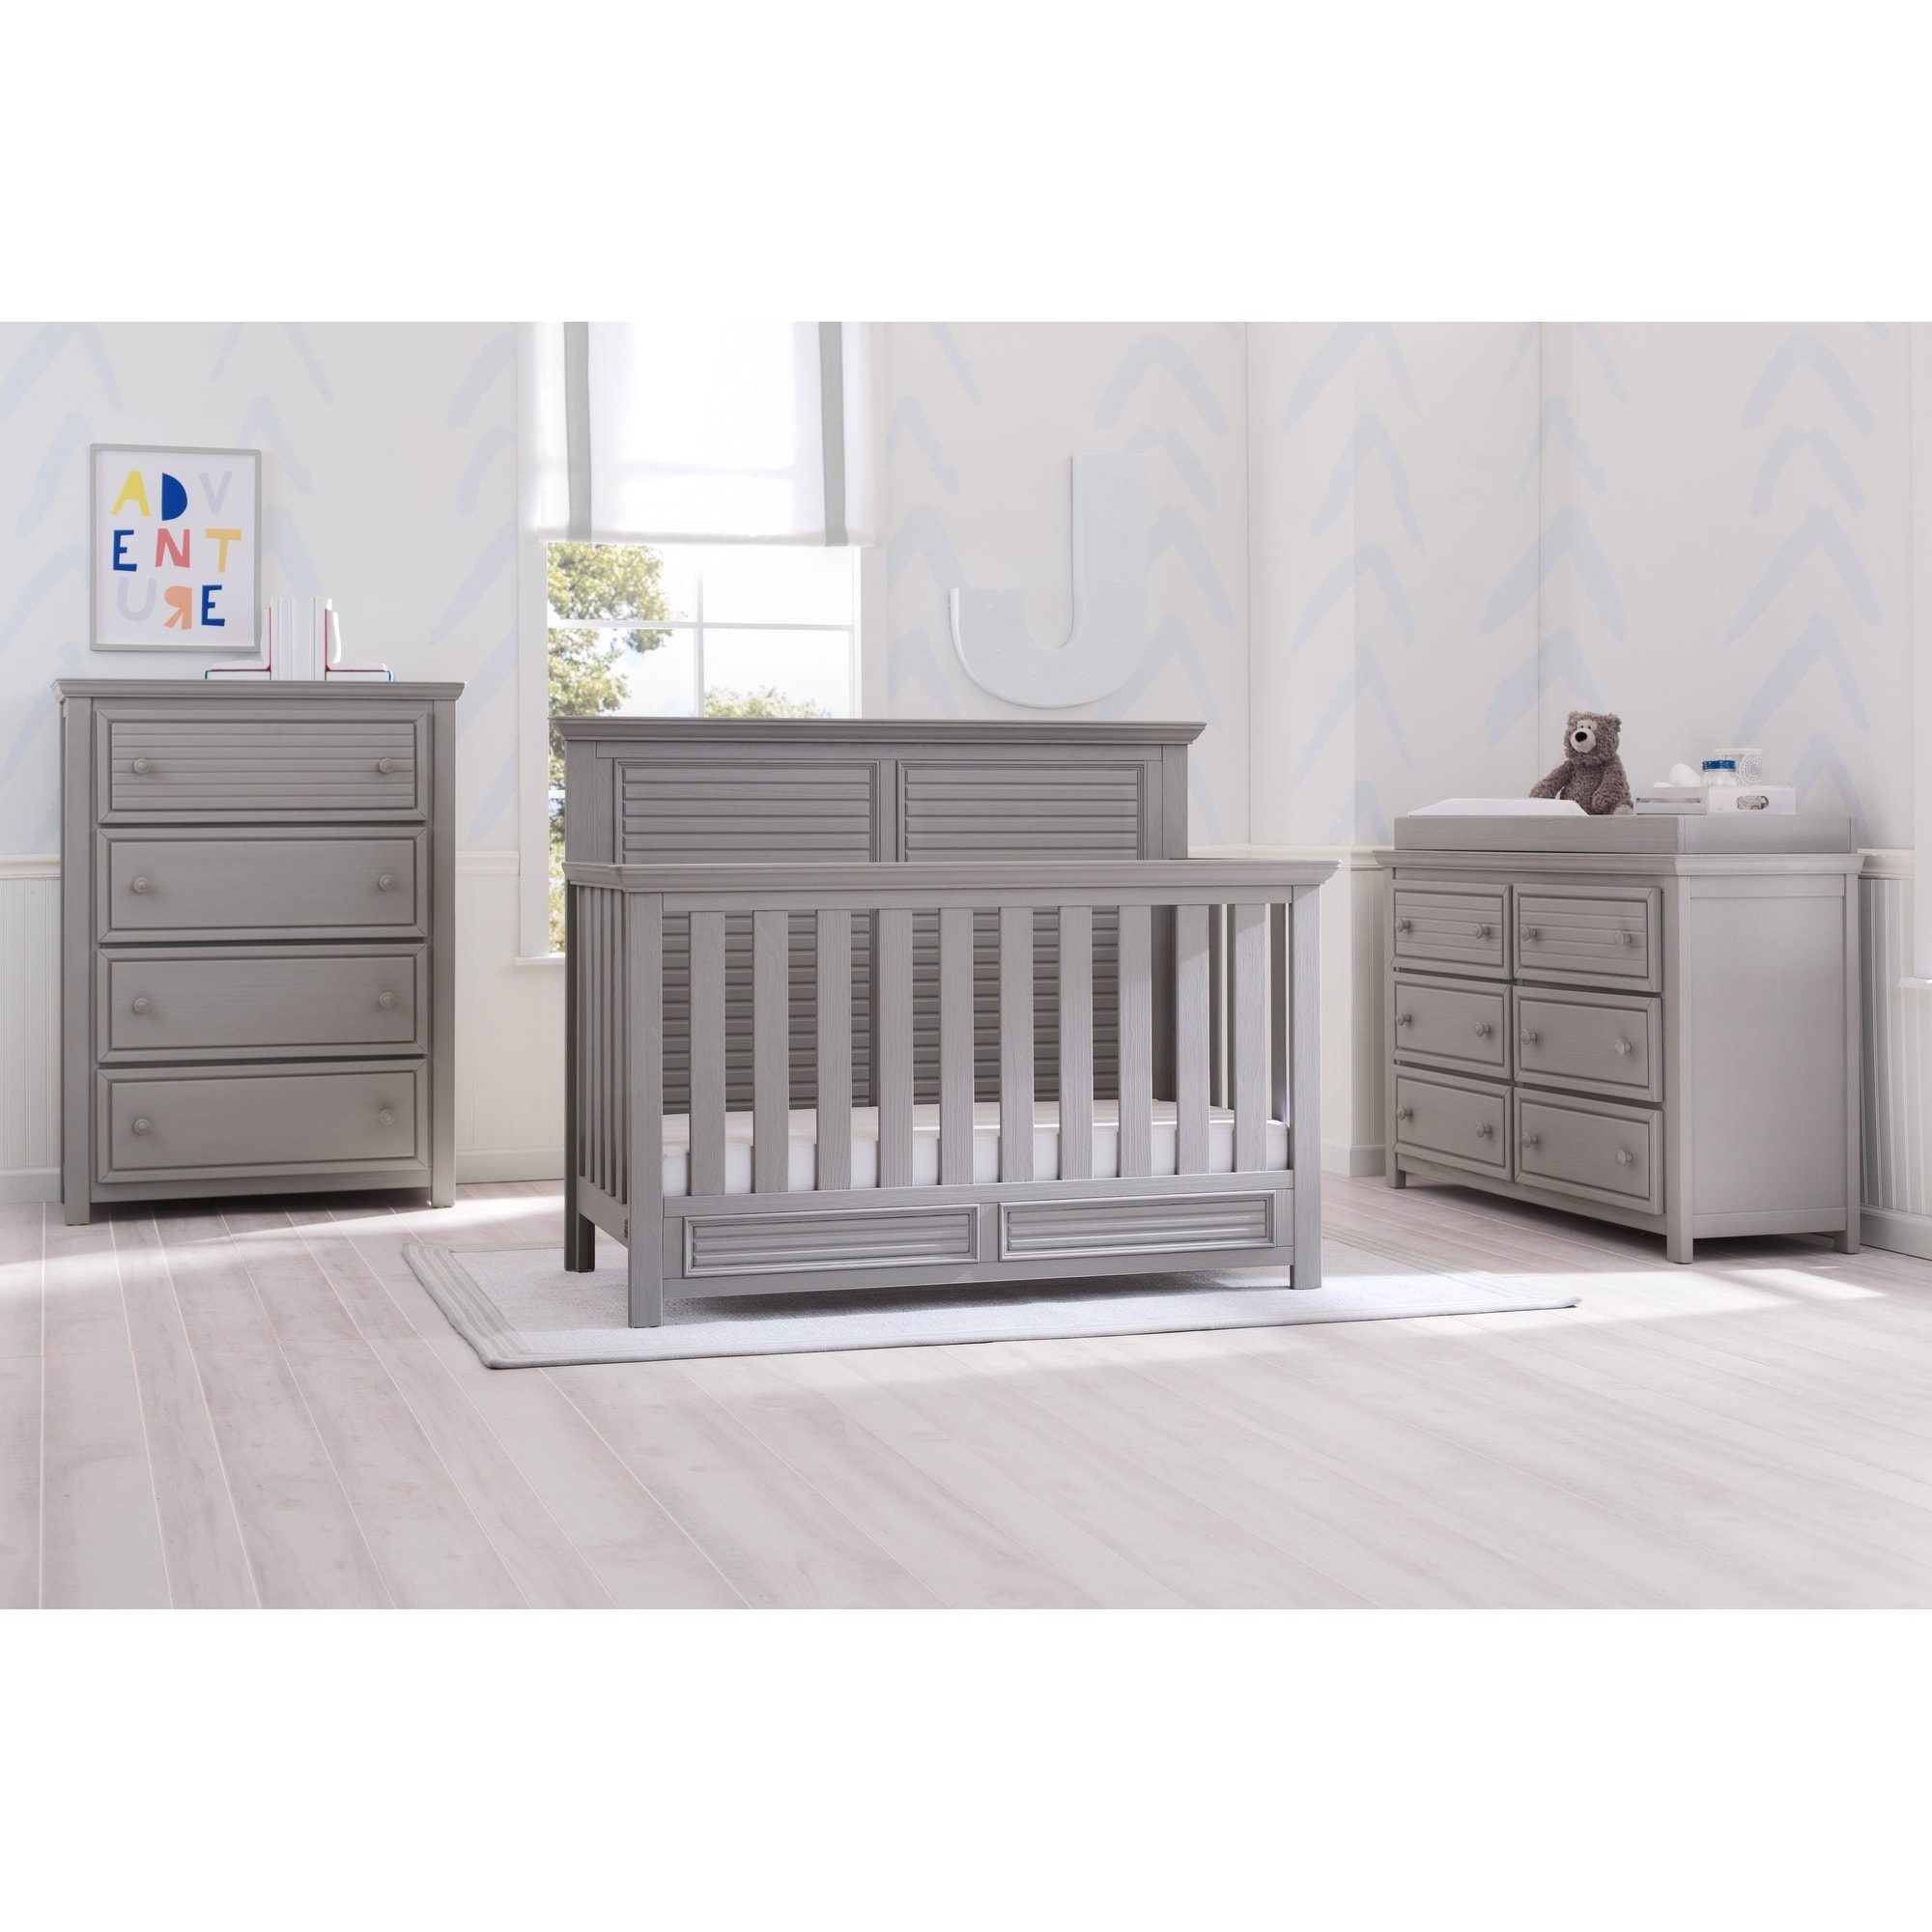 simmons nursery furniture. Simmons Kids Oakmont Convertible Crib N More, Rustic Bianca - Free Shipping Today Overstock 24111256 Nursery Furniture U